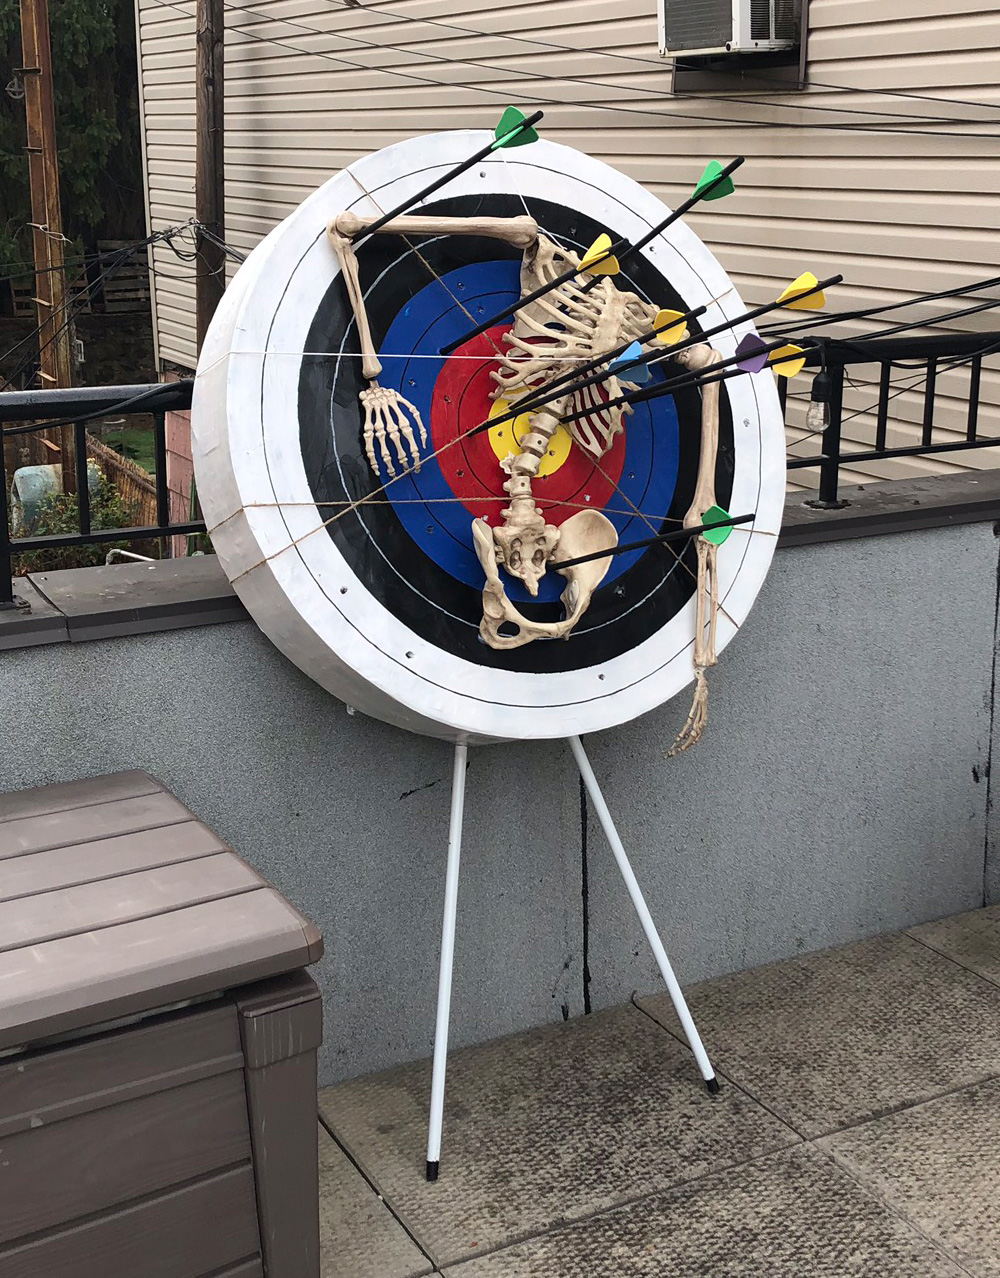 Paper mache archery target with skeleton decoration - finished!